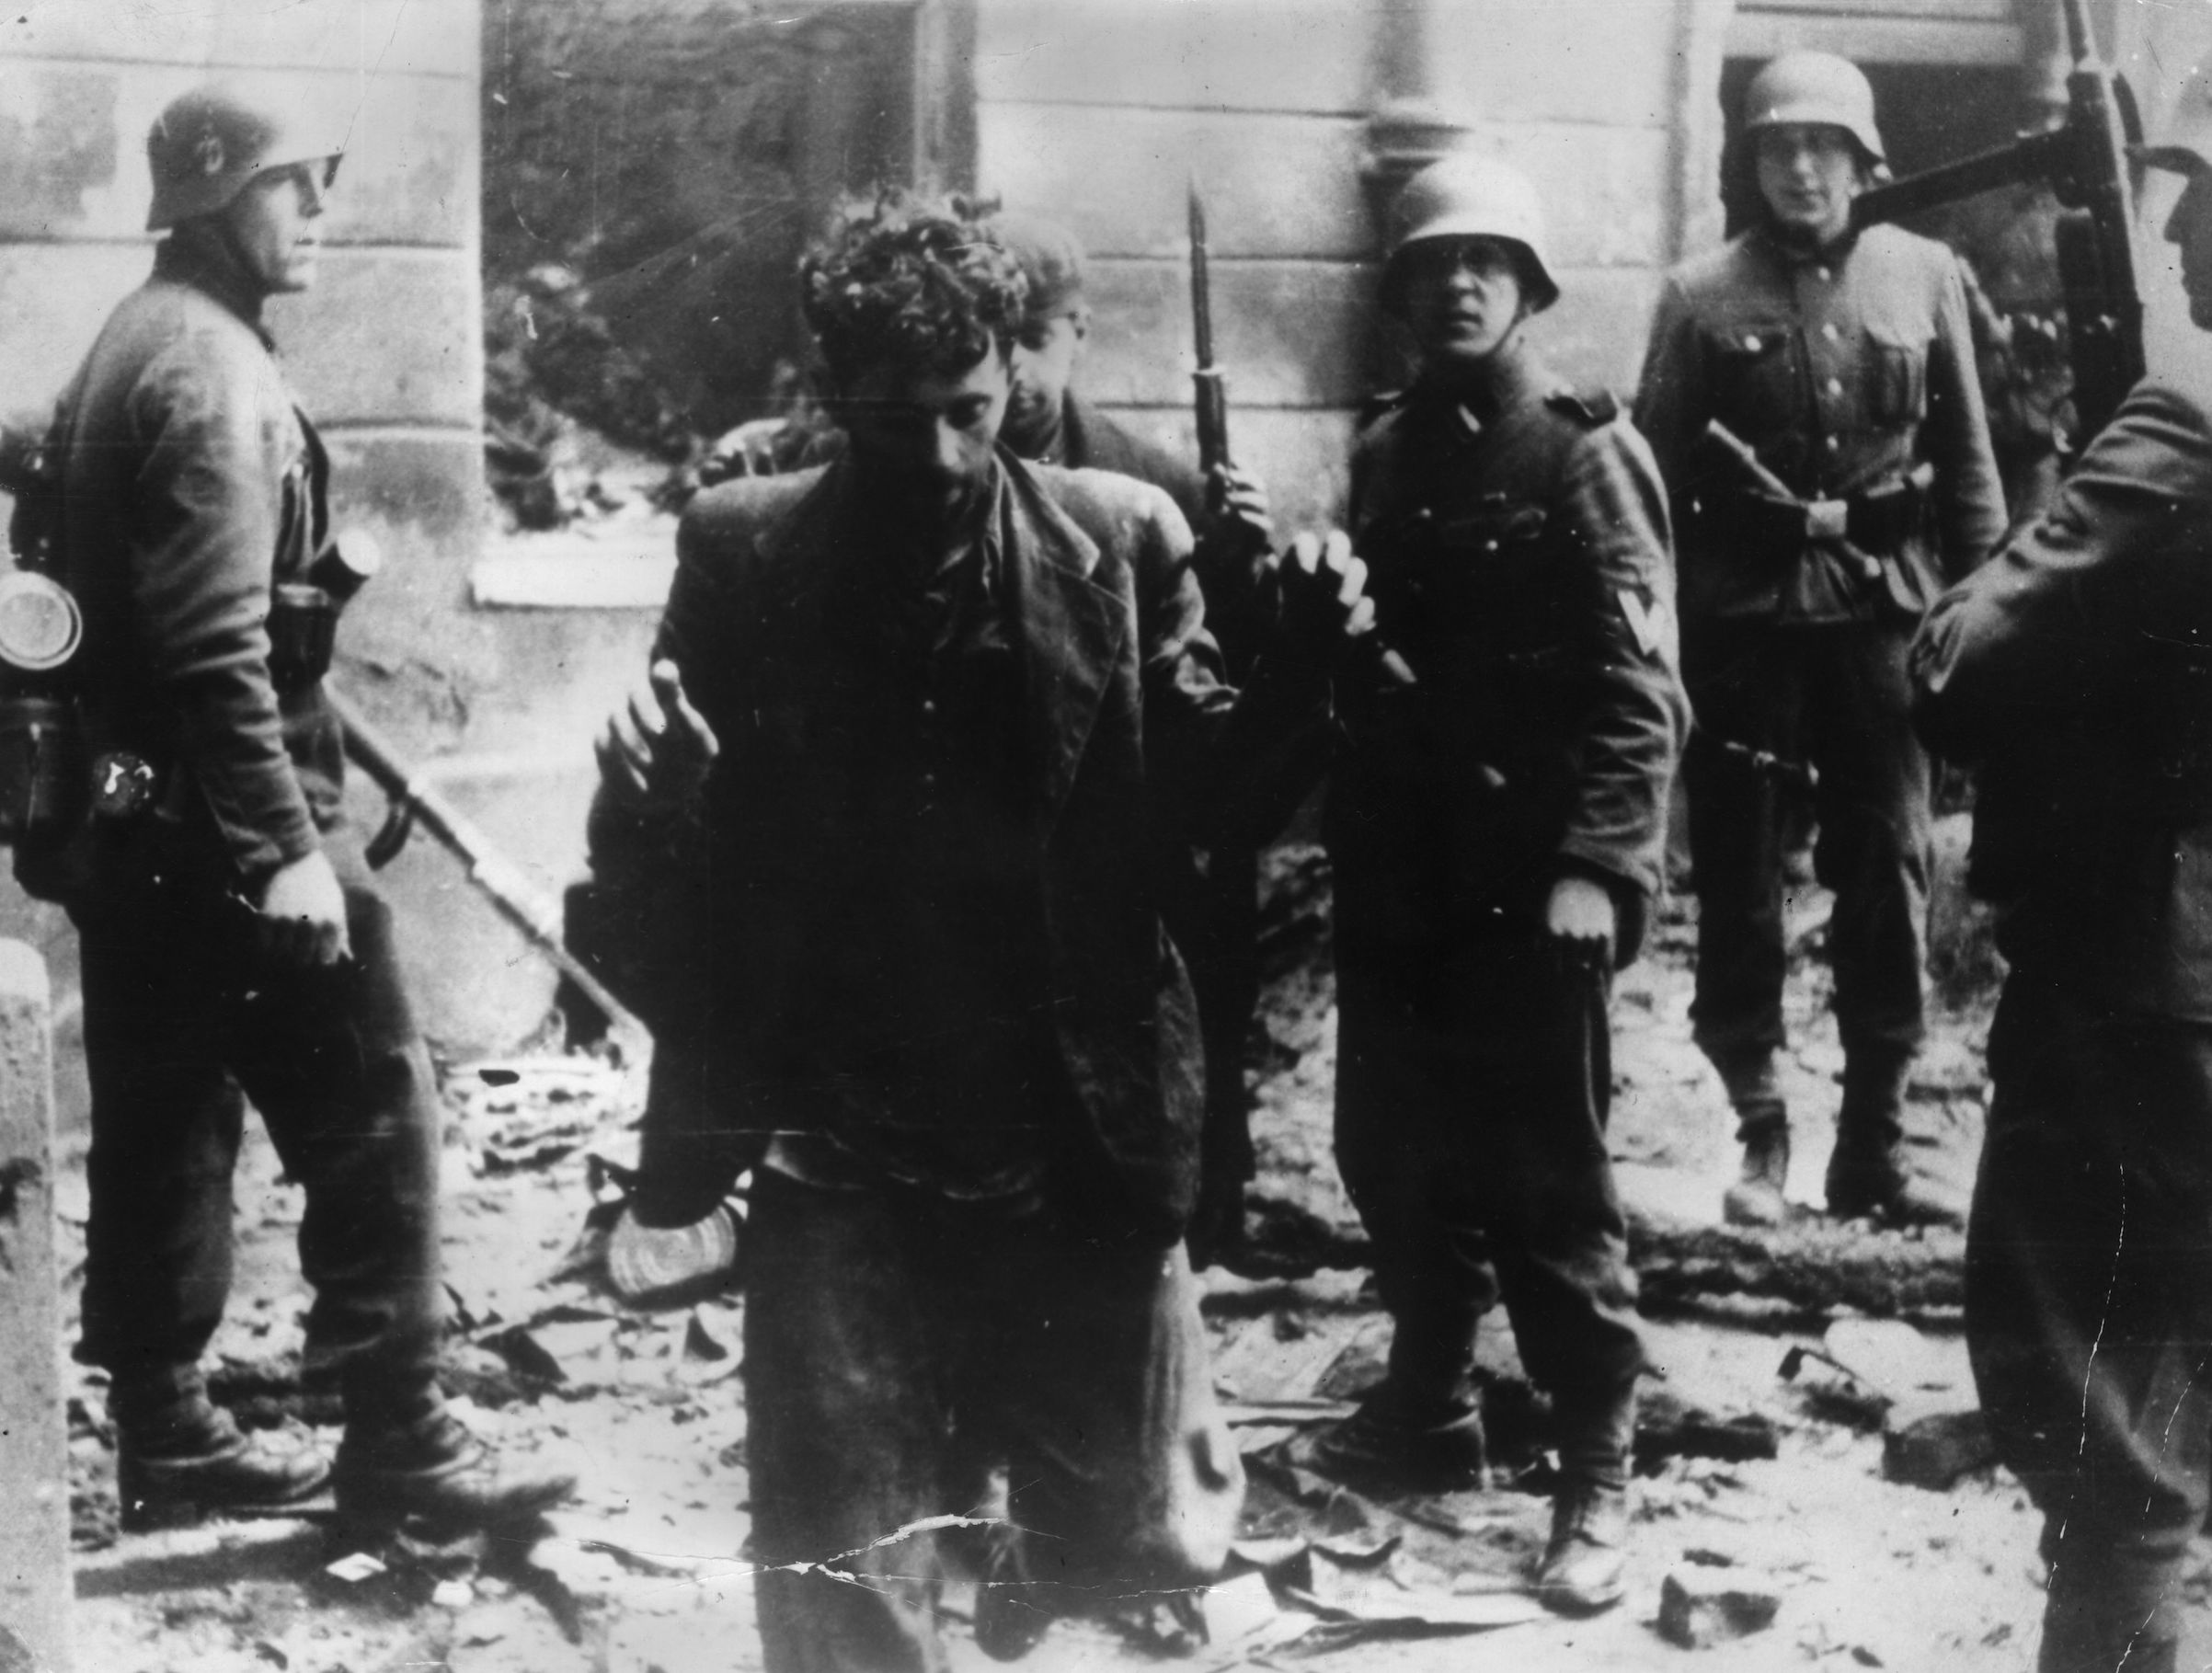 April 1943:  Two Jewish resistance fighters arrested by German troops during the Warsaw Ghetto Uprising.